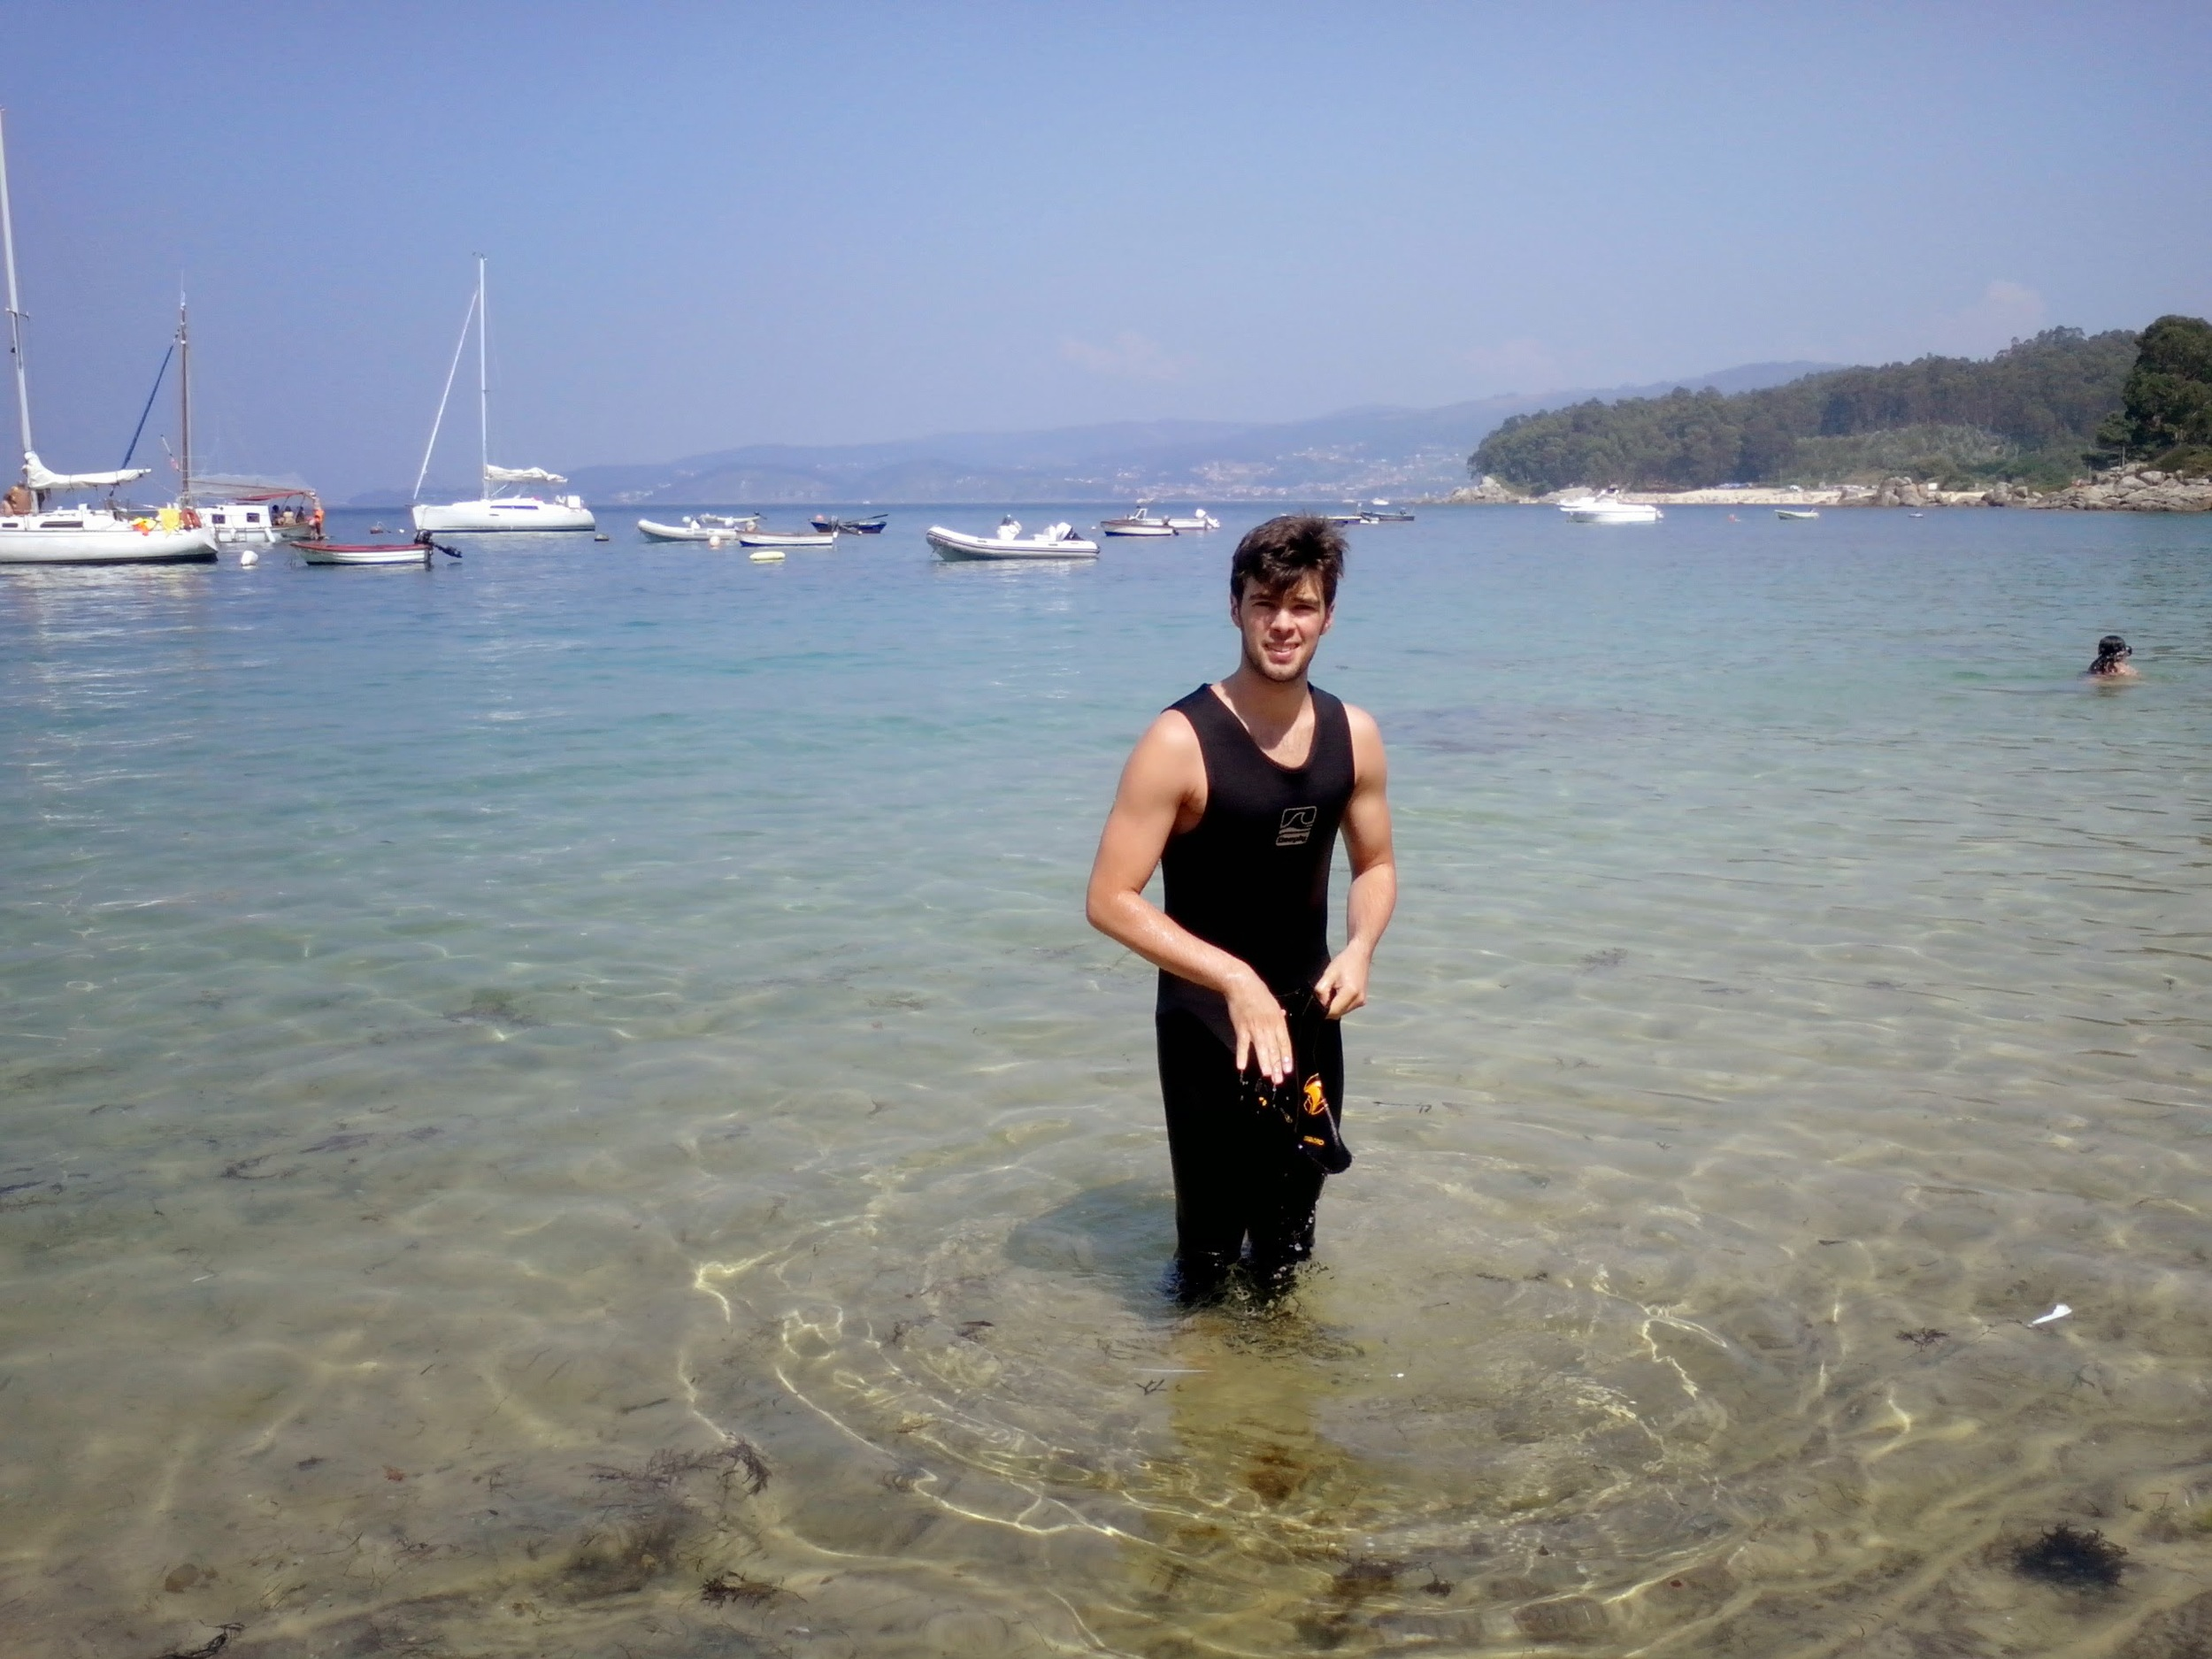 His natural habitat. The waters of Galicia